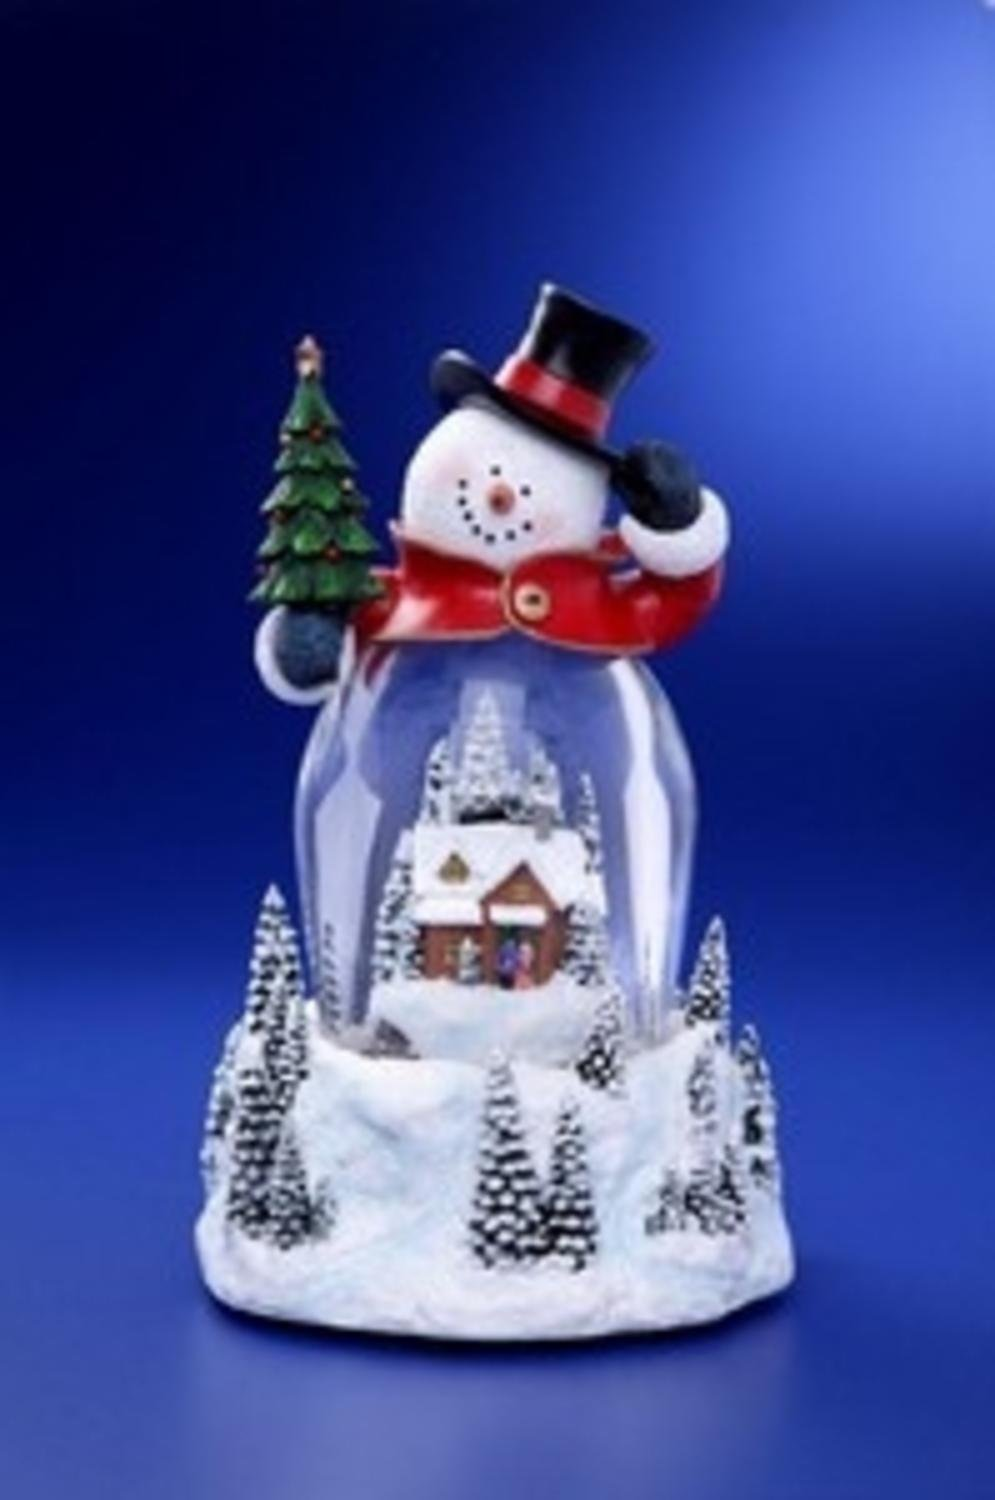 Pack of 2 Icy Crystal Illuminated Musical Christmas Snowman Snow Globe 9''